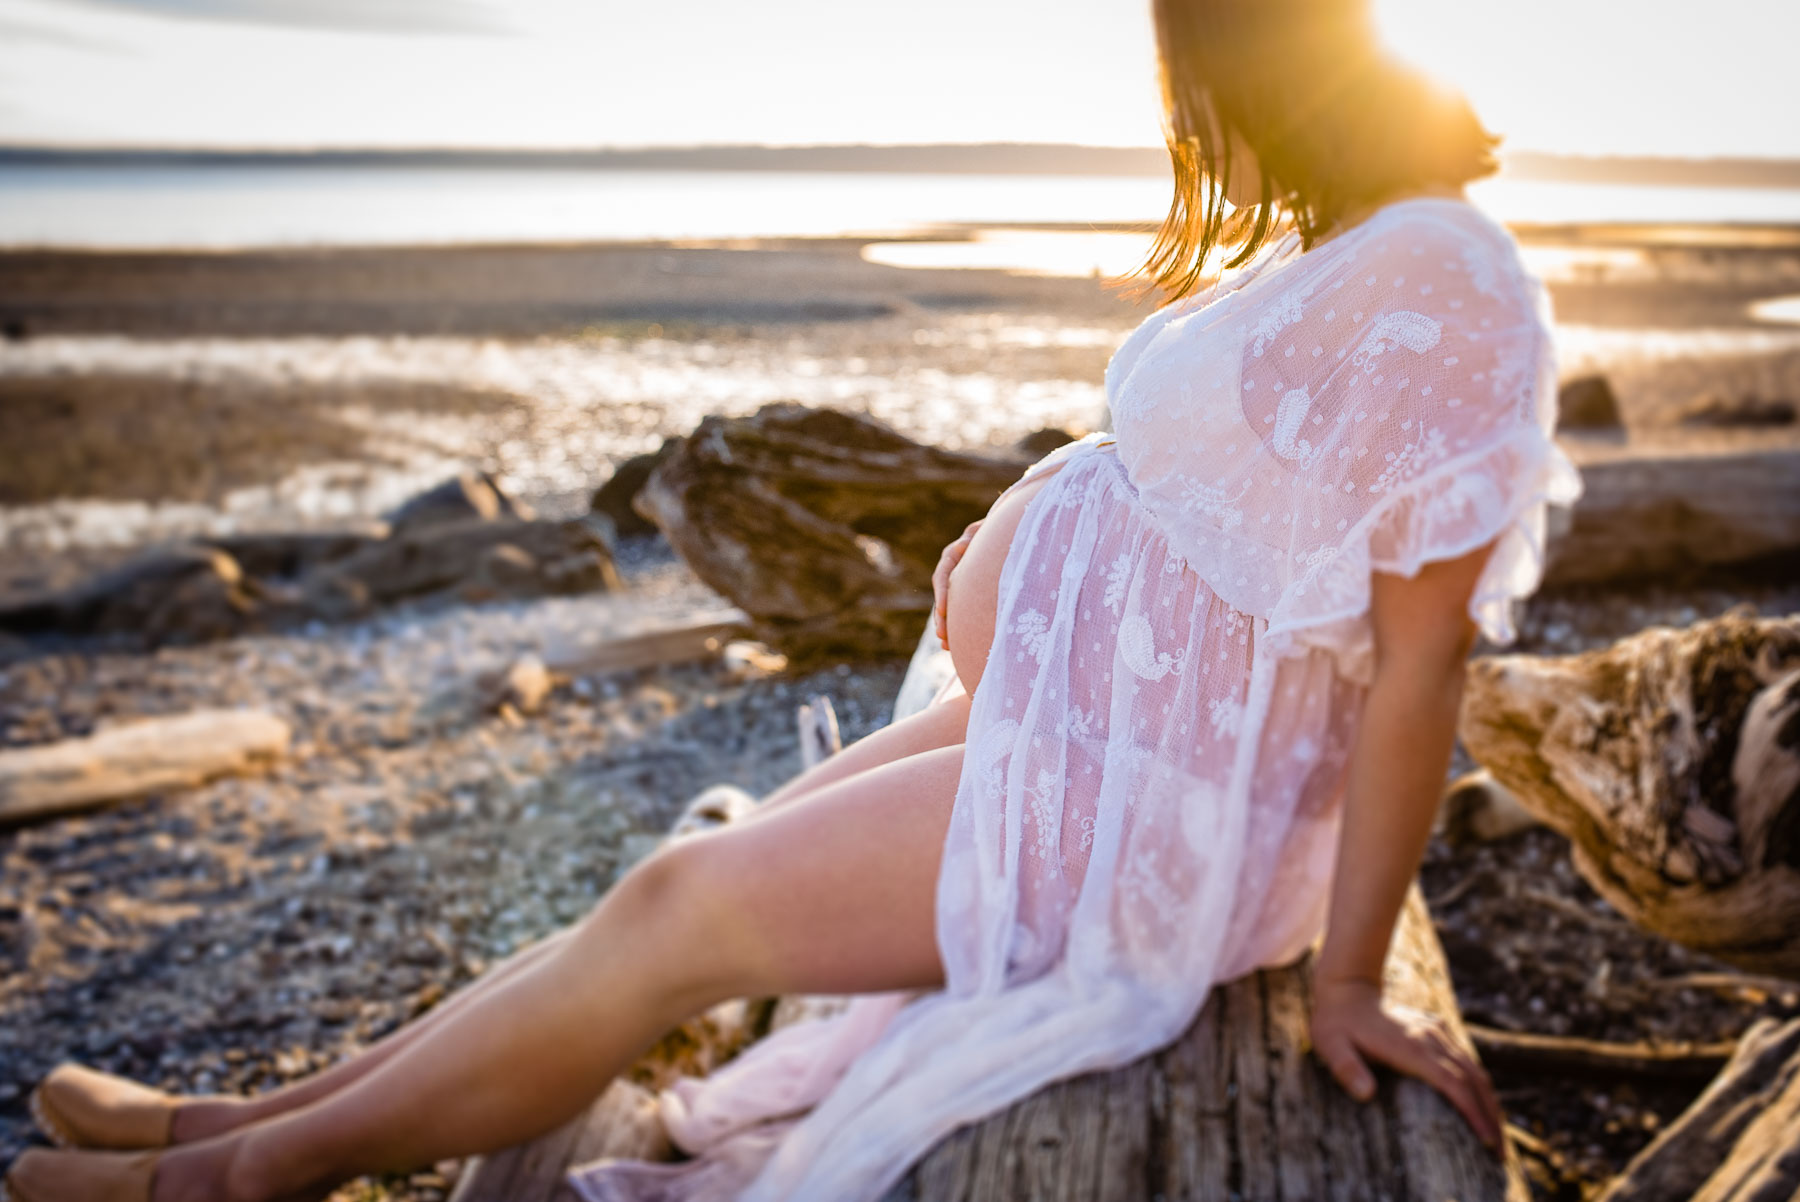 pregnant woman at beach sitting on driftwood log